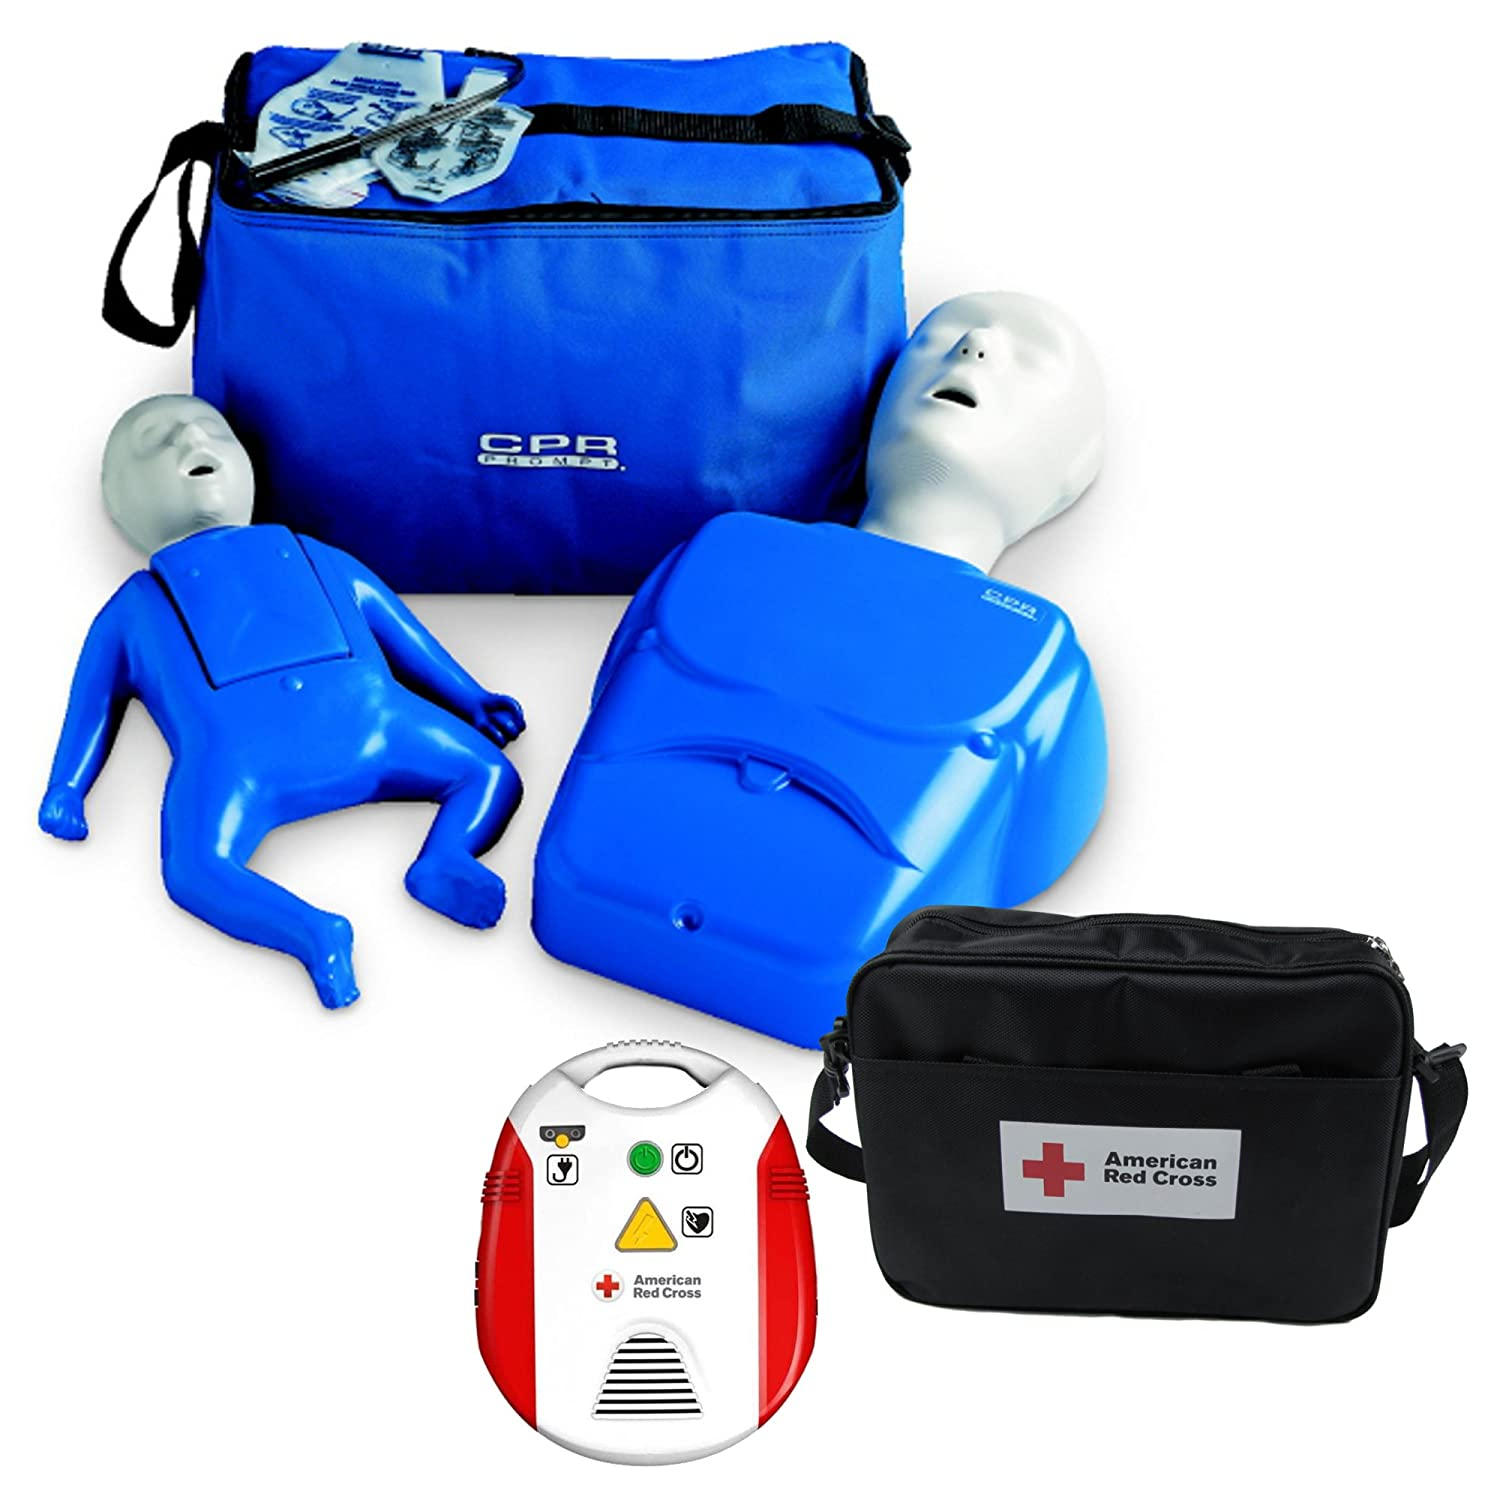 Beginner Instructor Package Cpr Prompt Manikins Red Cross Aed